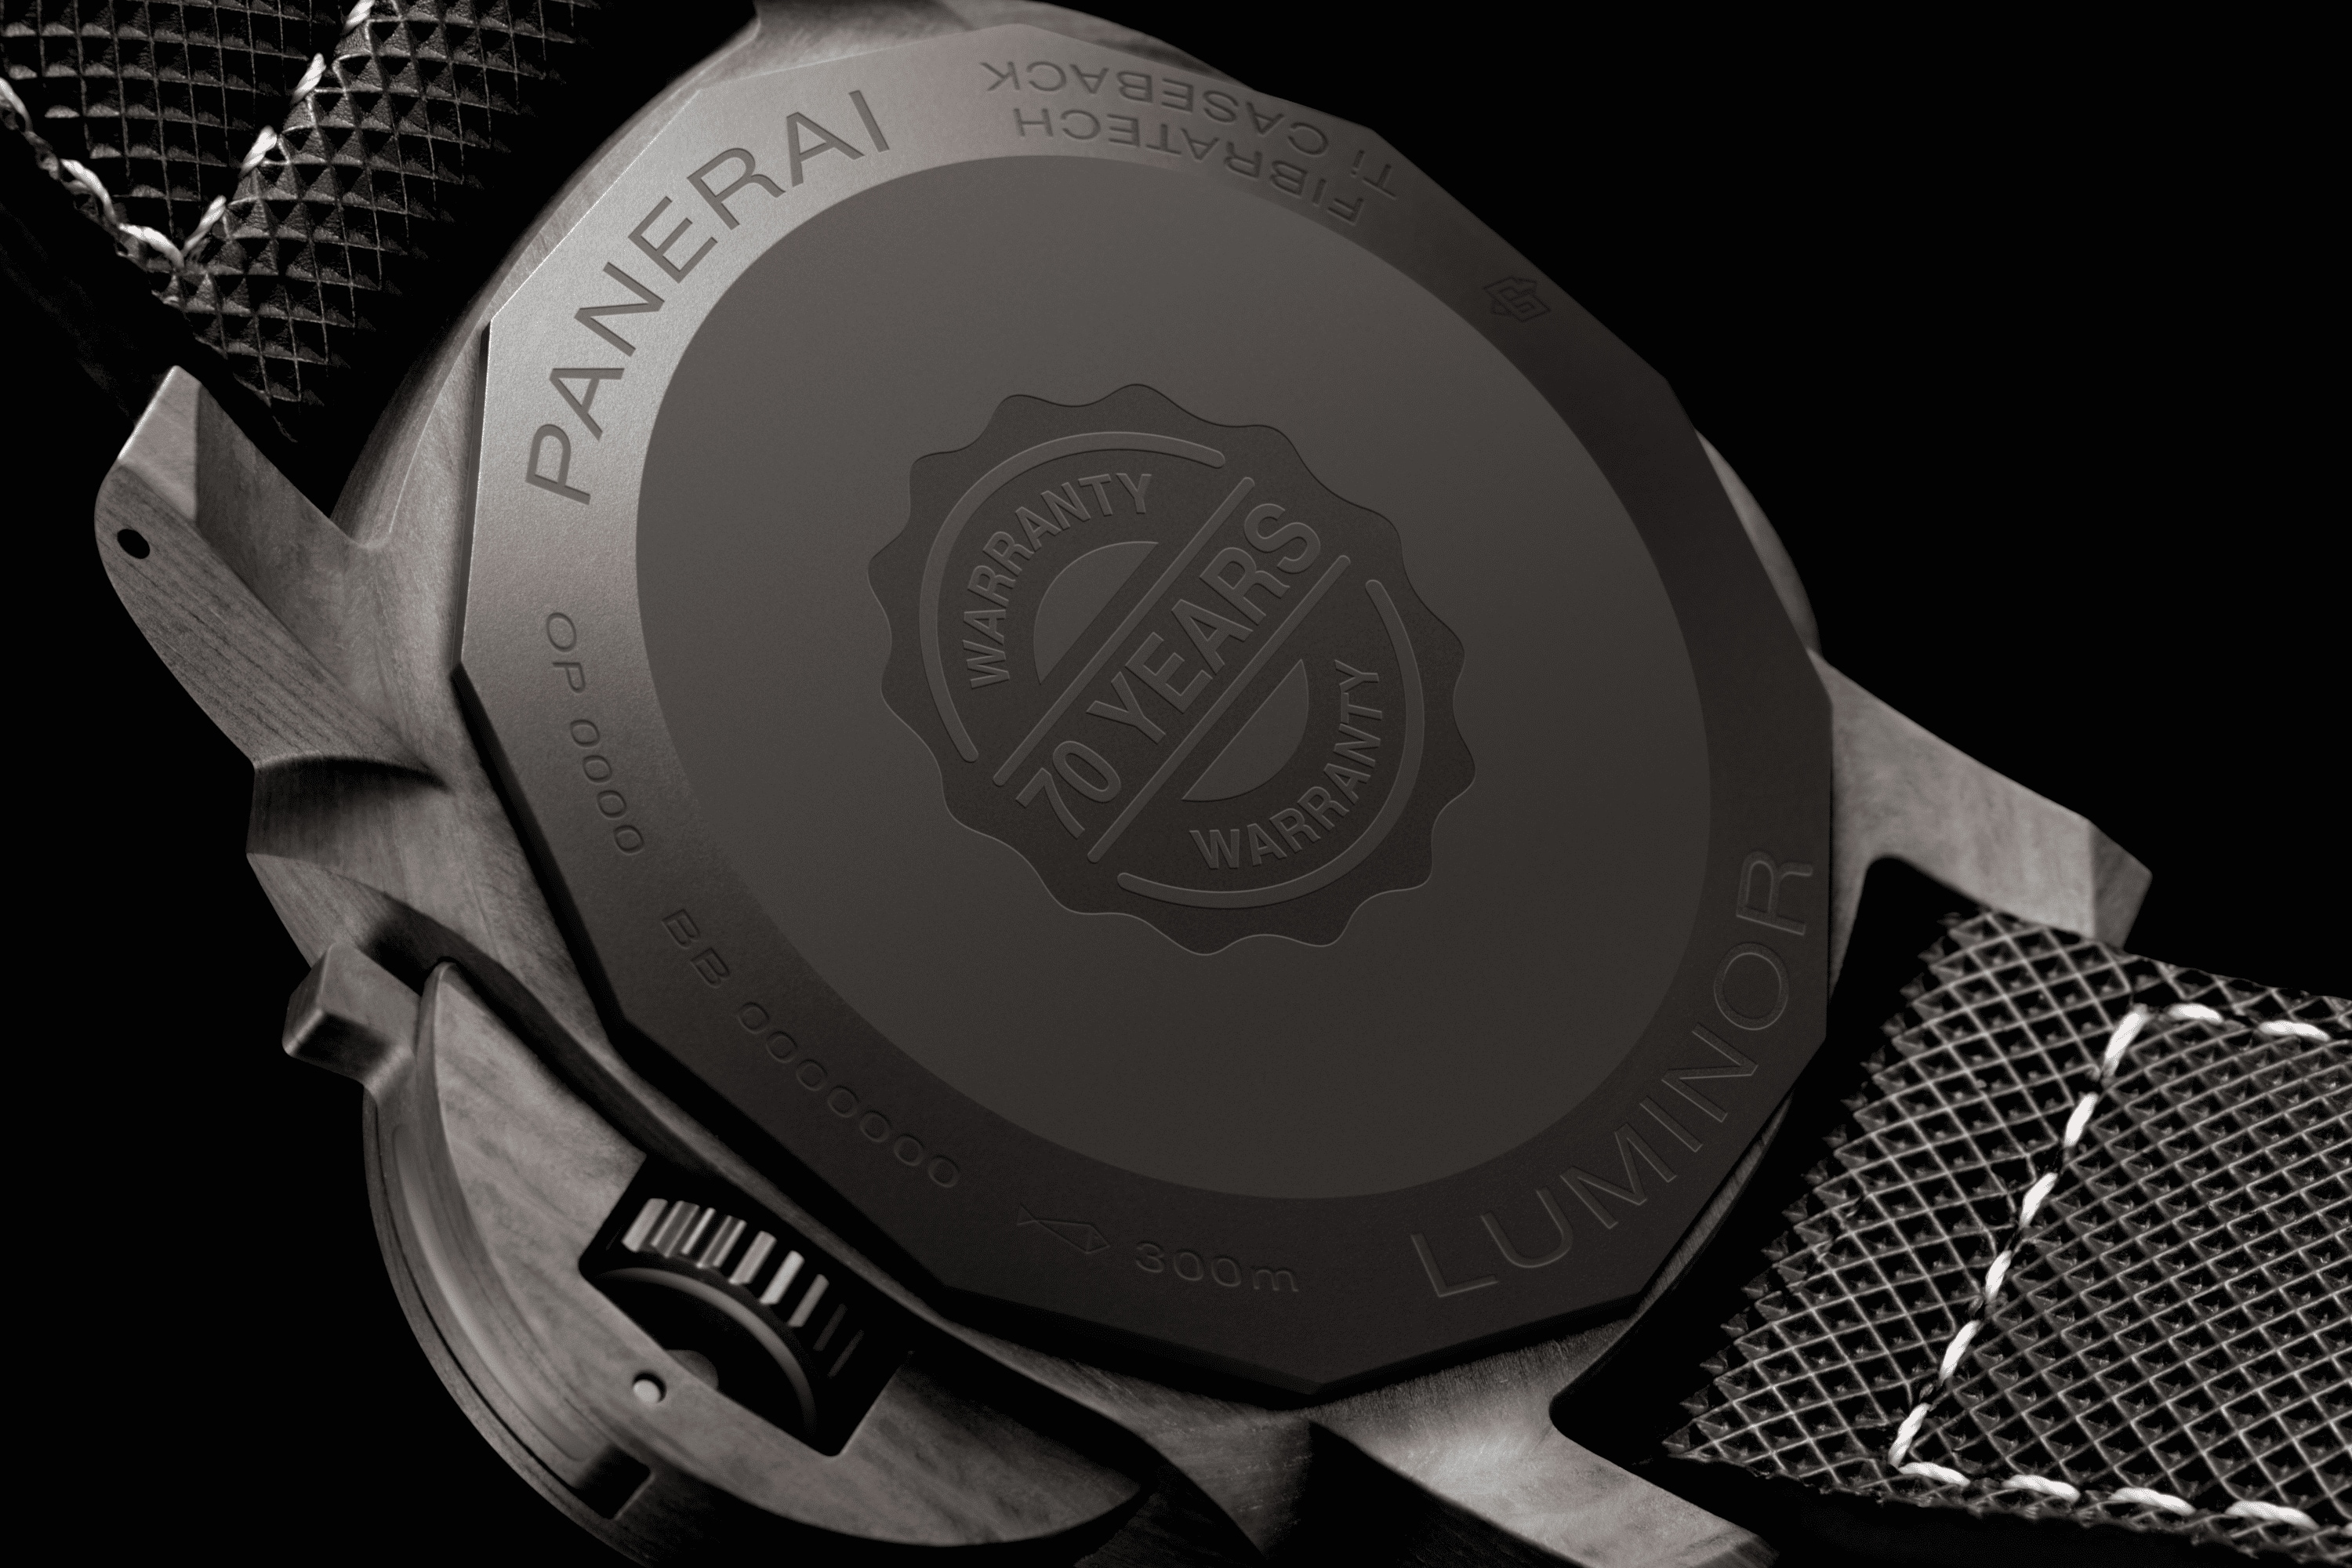 PNPAM01119 - Luminor Marina Fibratech™ - 44mm